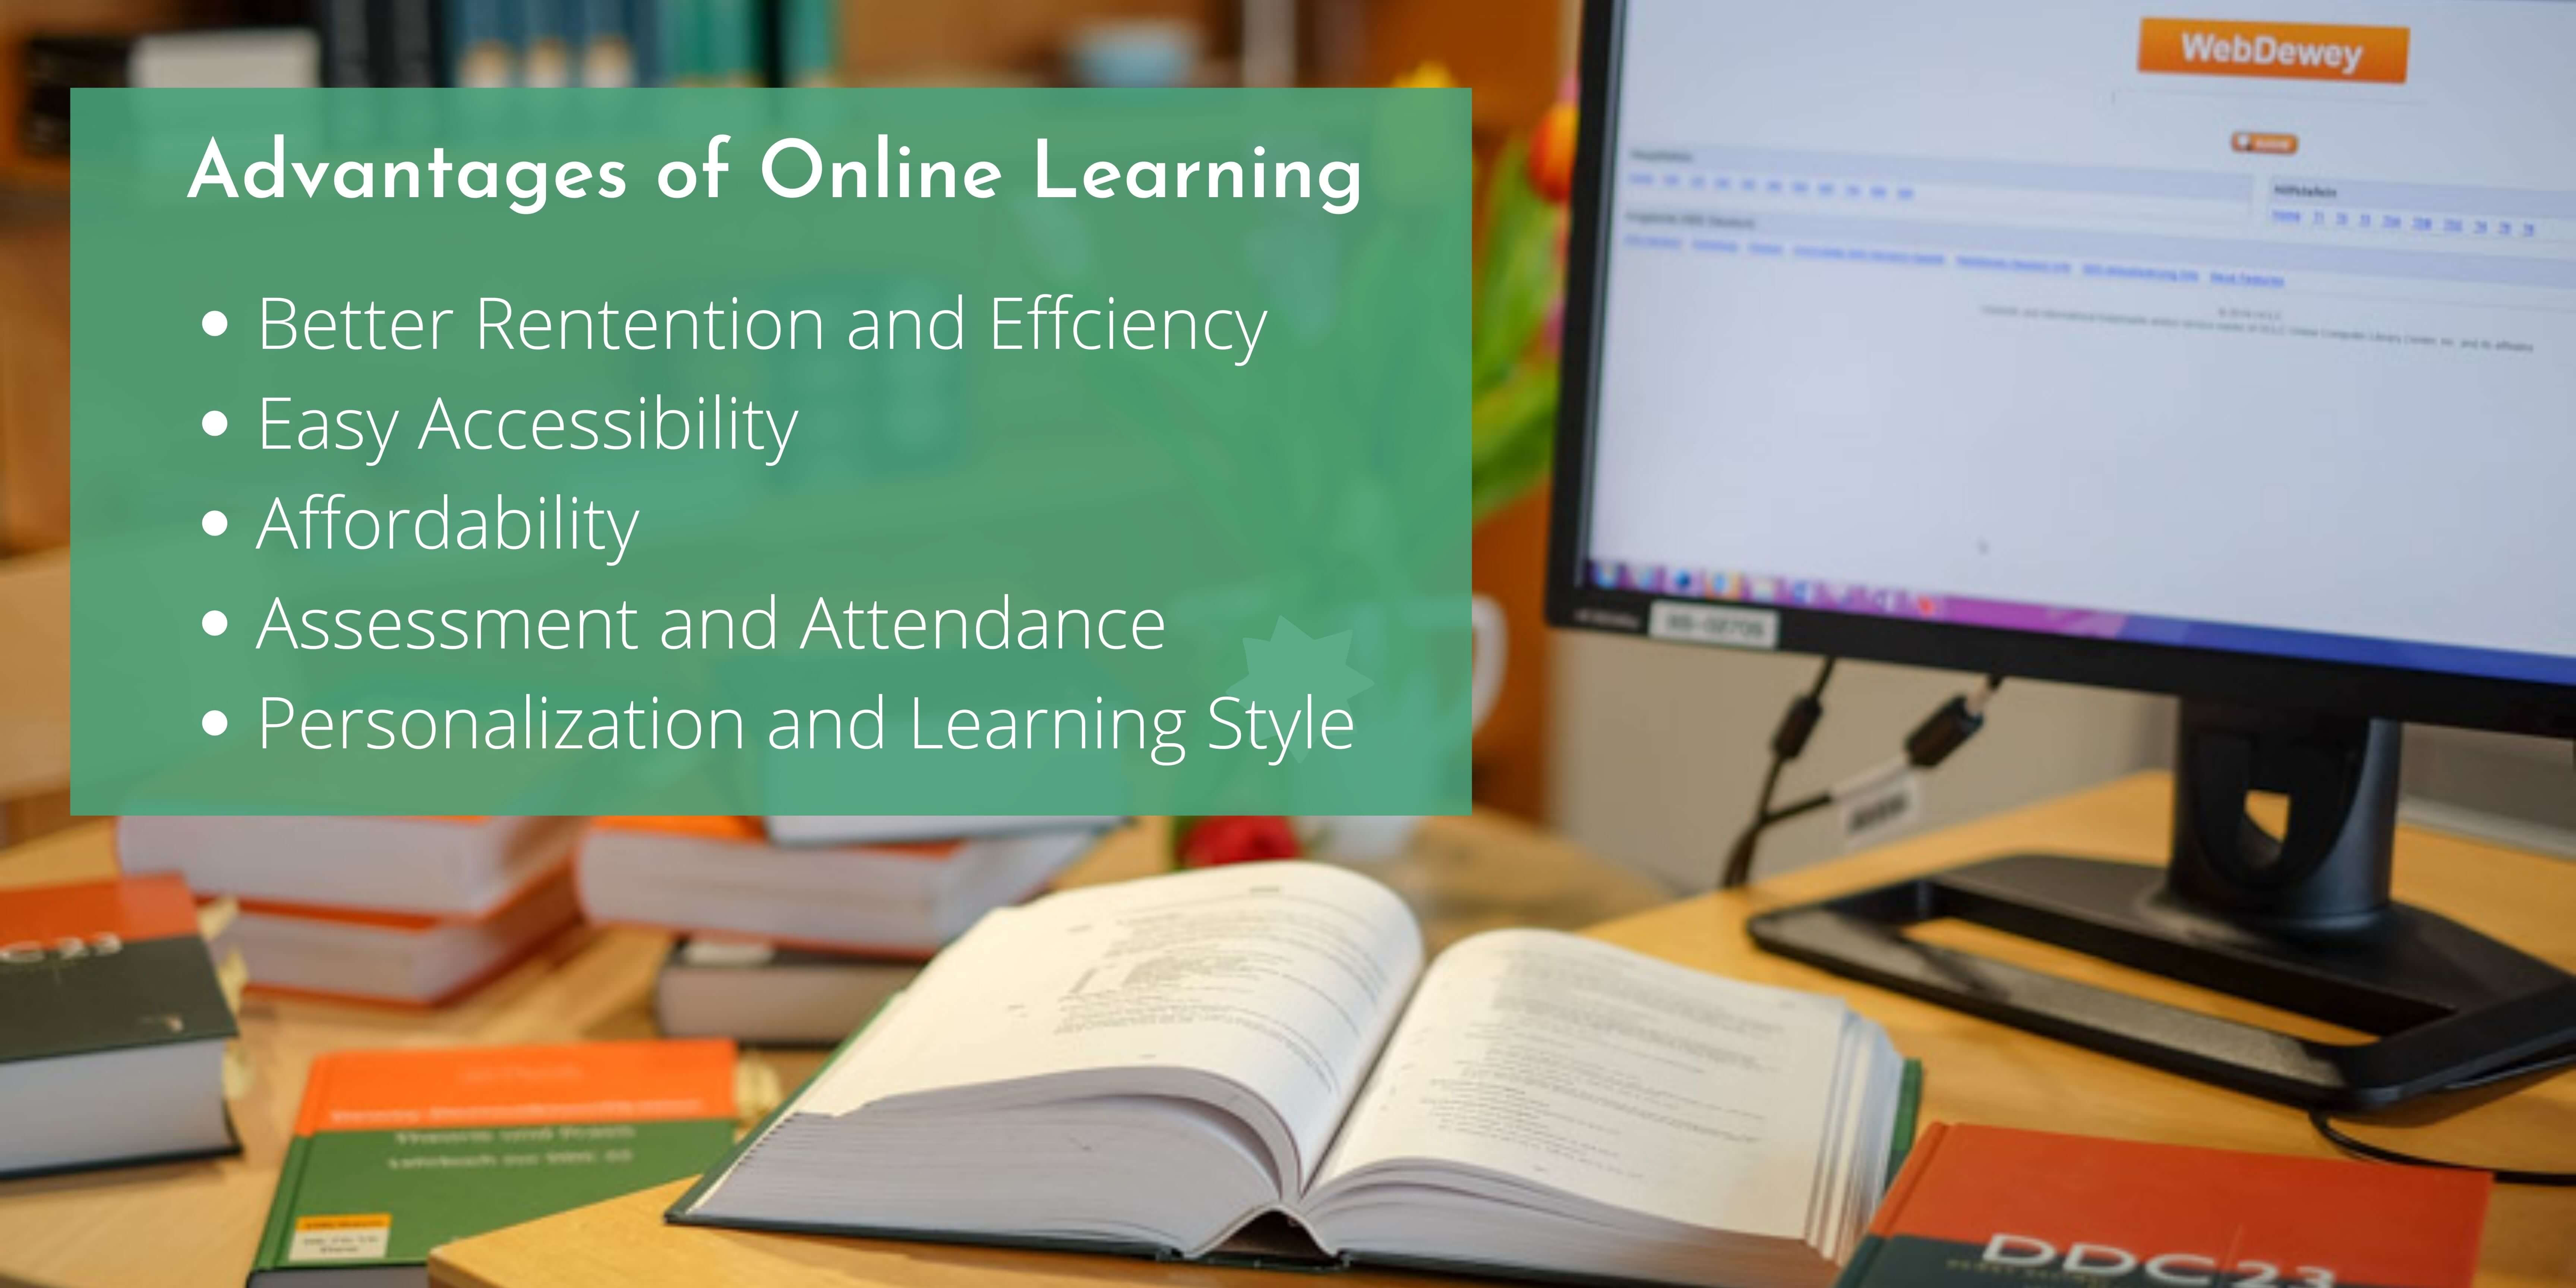 Advantages of Online Learning banner, listing out the points